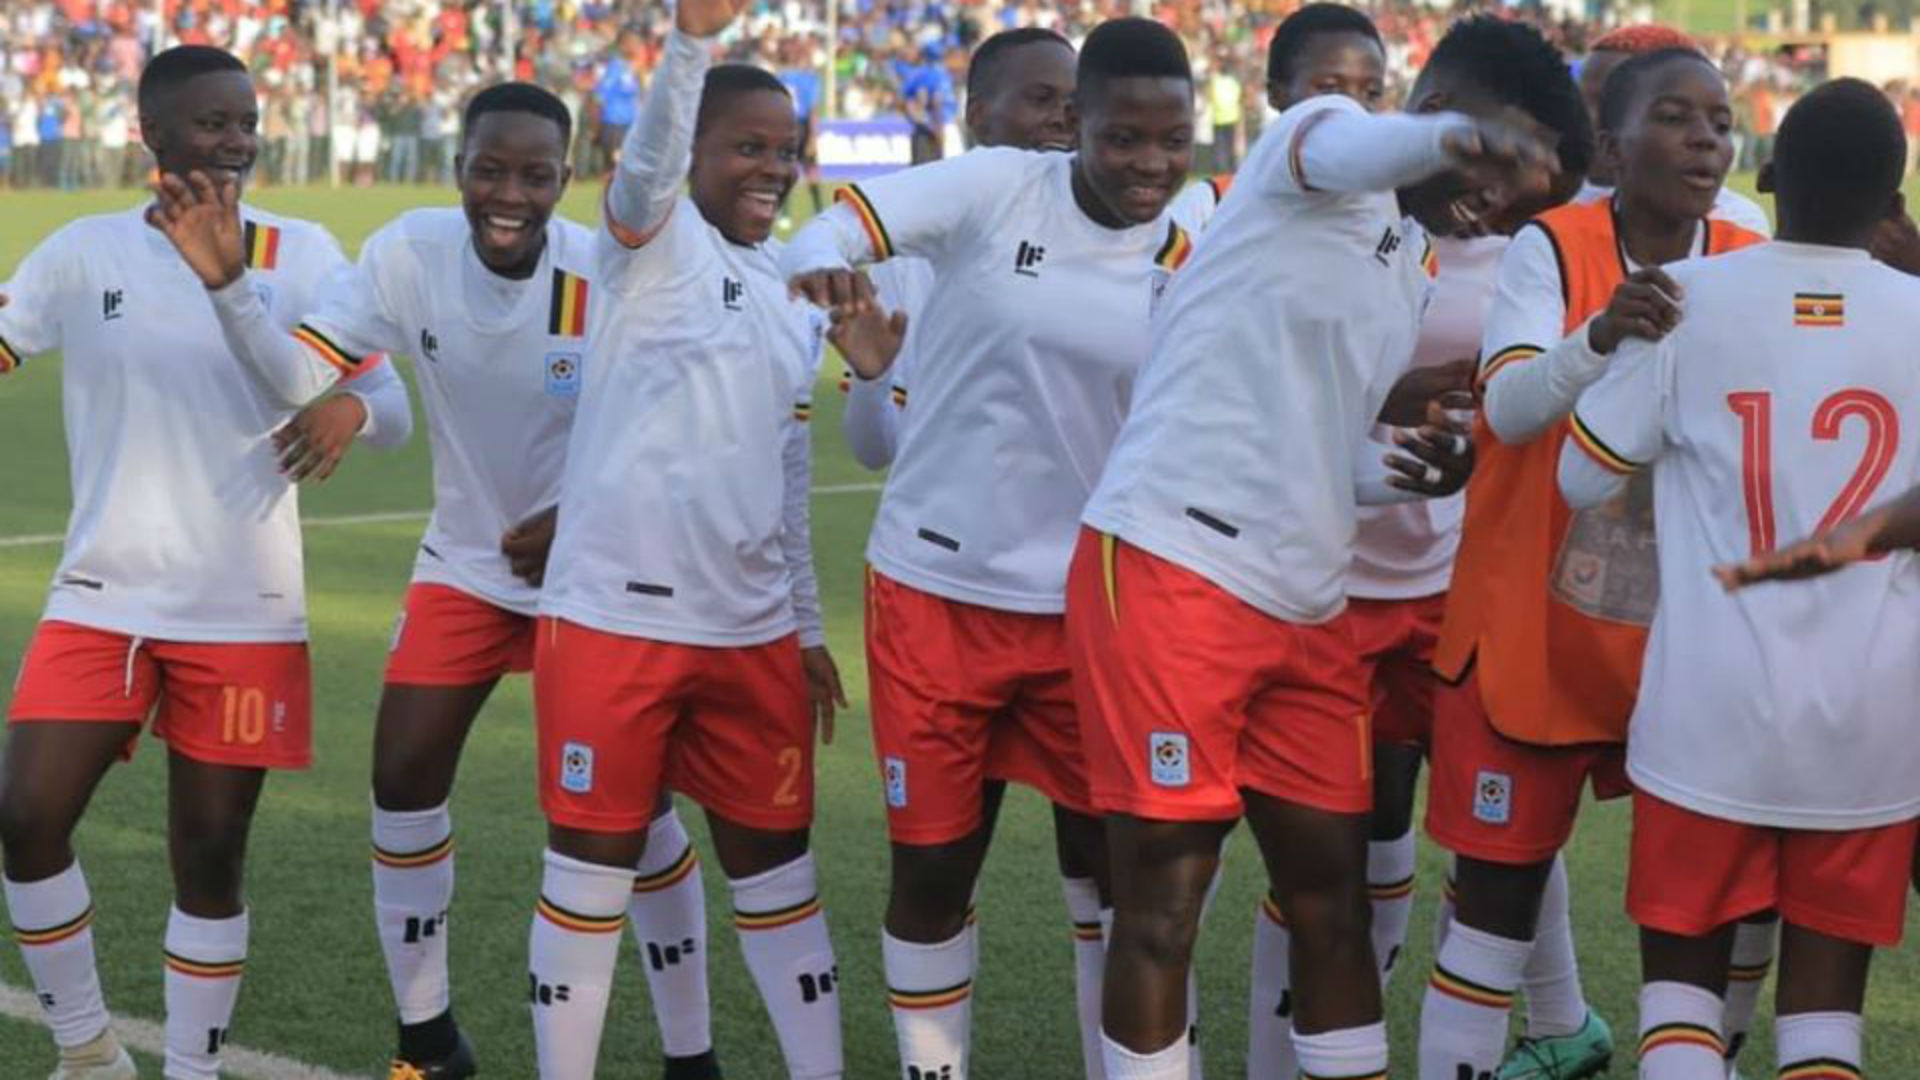 Uganda have what it takes to qualify for World Cup U17 - Nalukenge